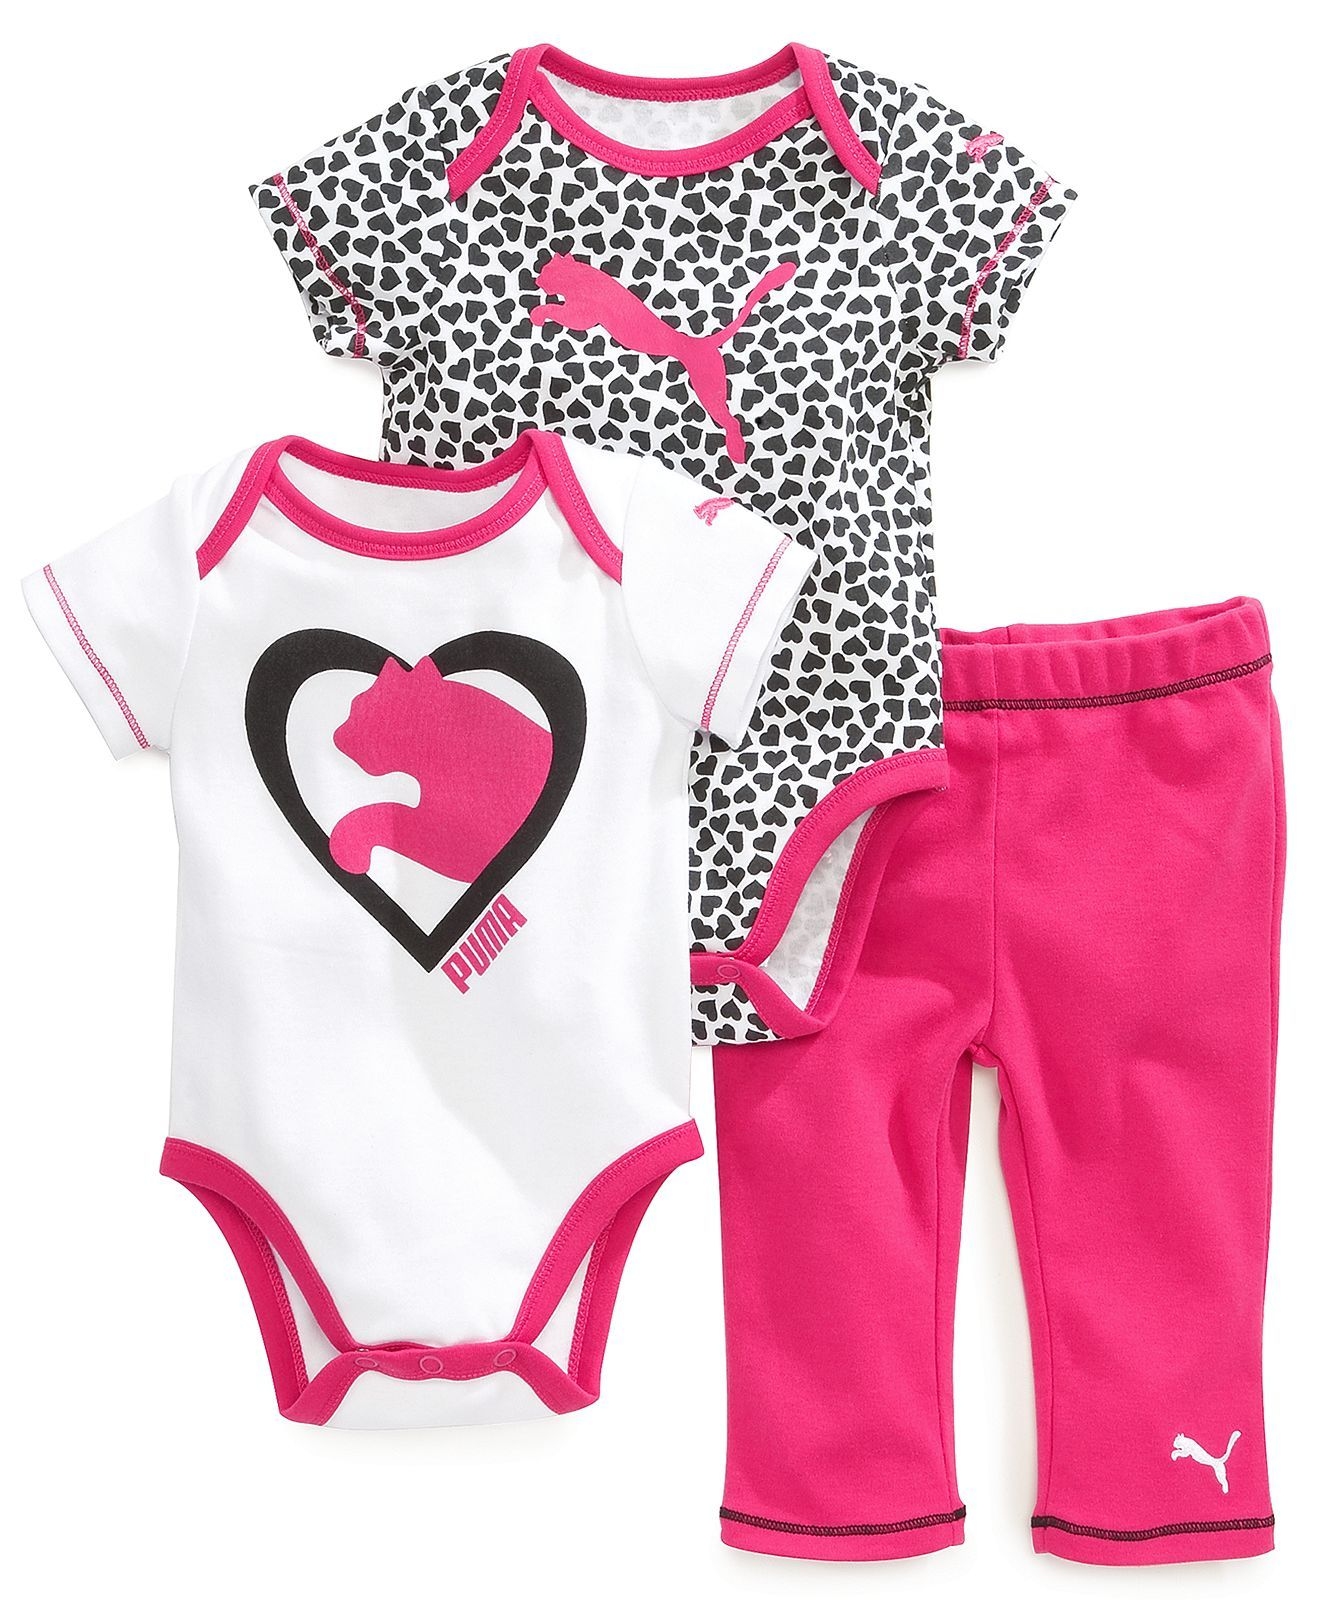 207f01a31 Puma Baby Girls' 3-Piece Heart Set - Kids Baby Girl (0-24 months) - Macy's